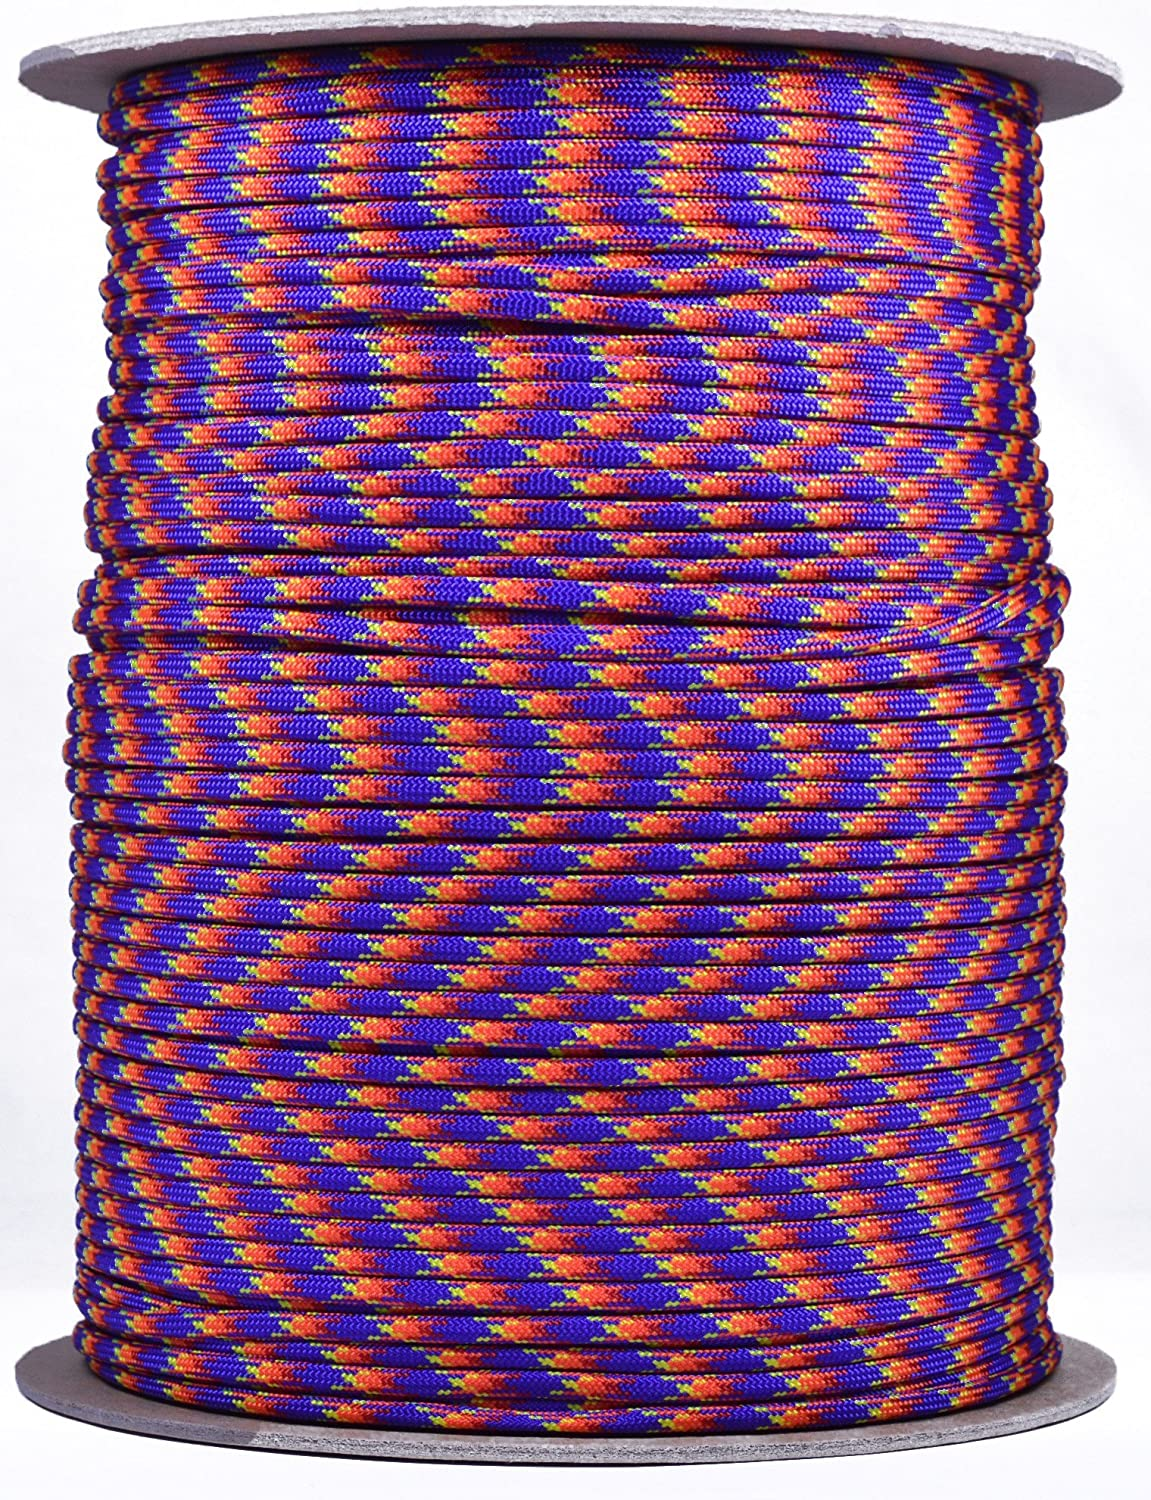 BoredParacord Brand 550 lb Paracord - 300 Over Shipping included Spools 1000 ft. Super sale